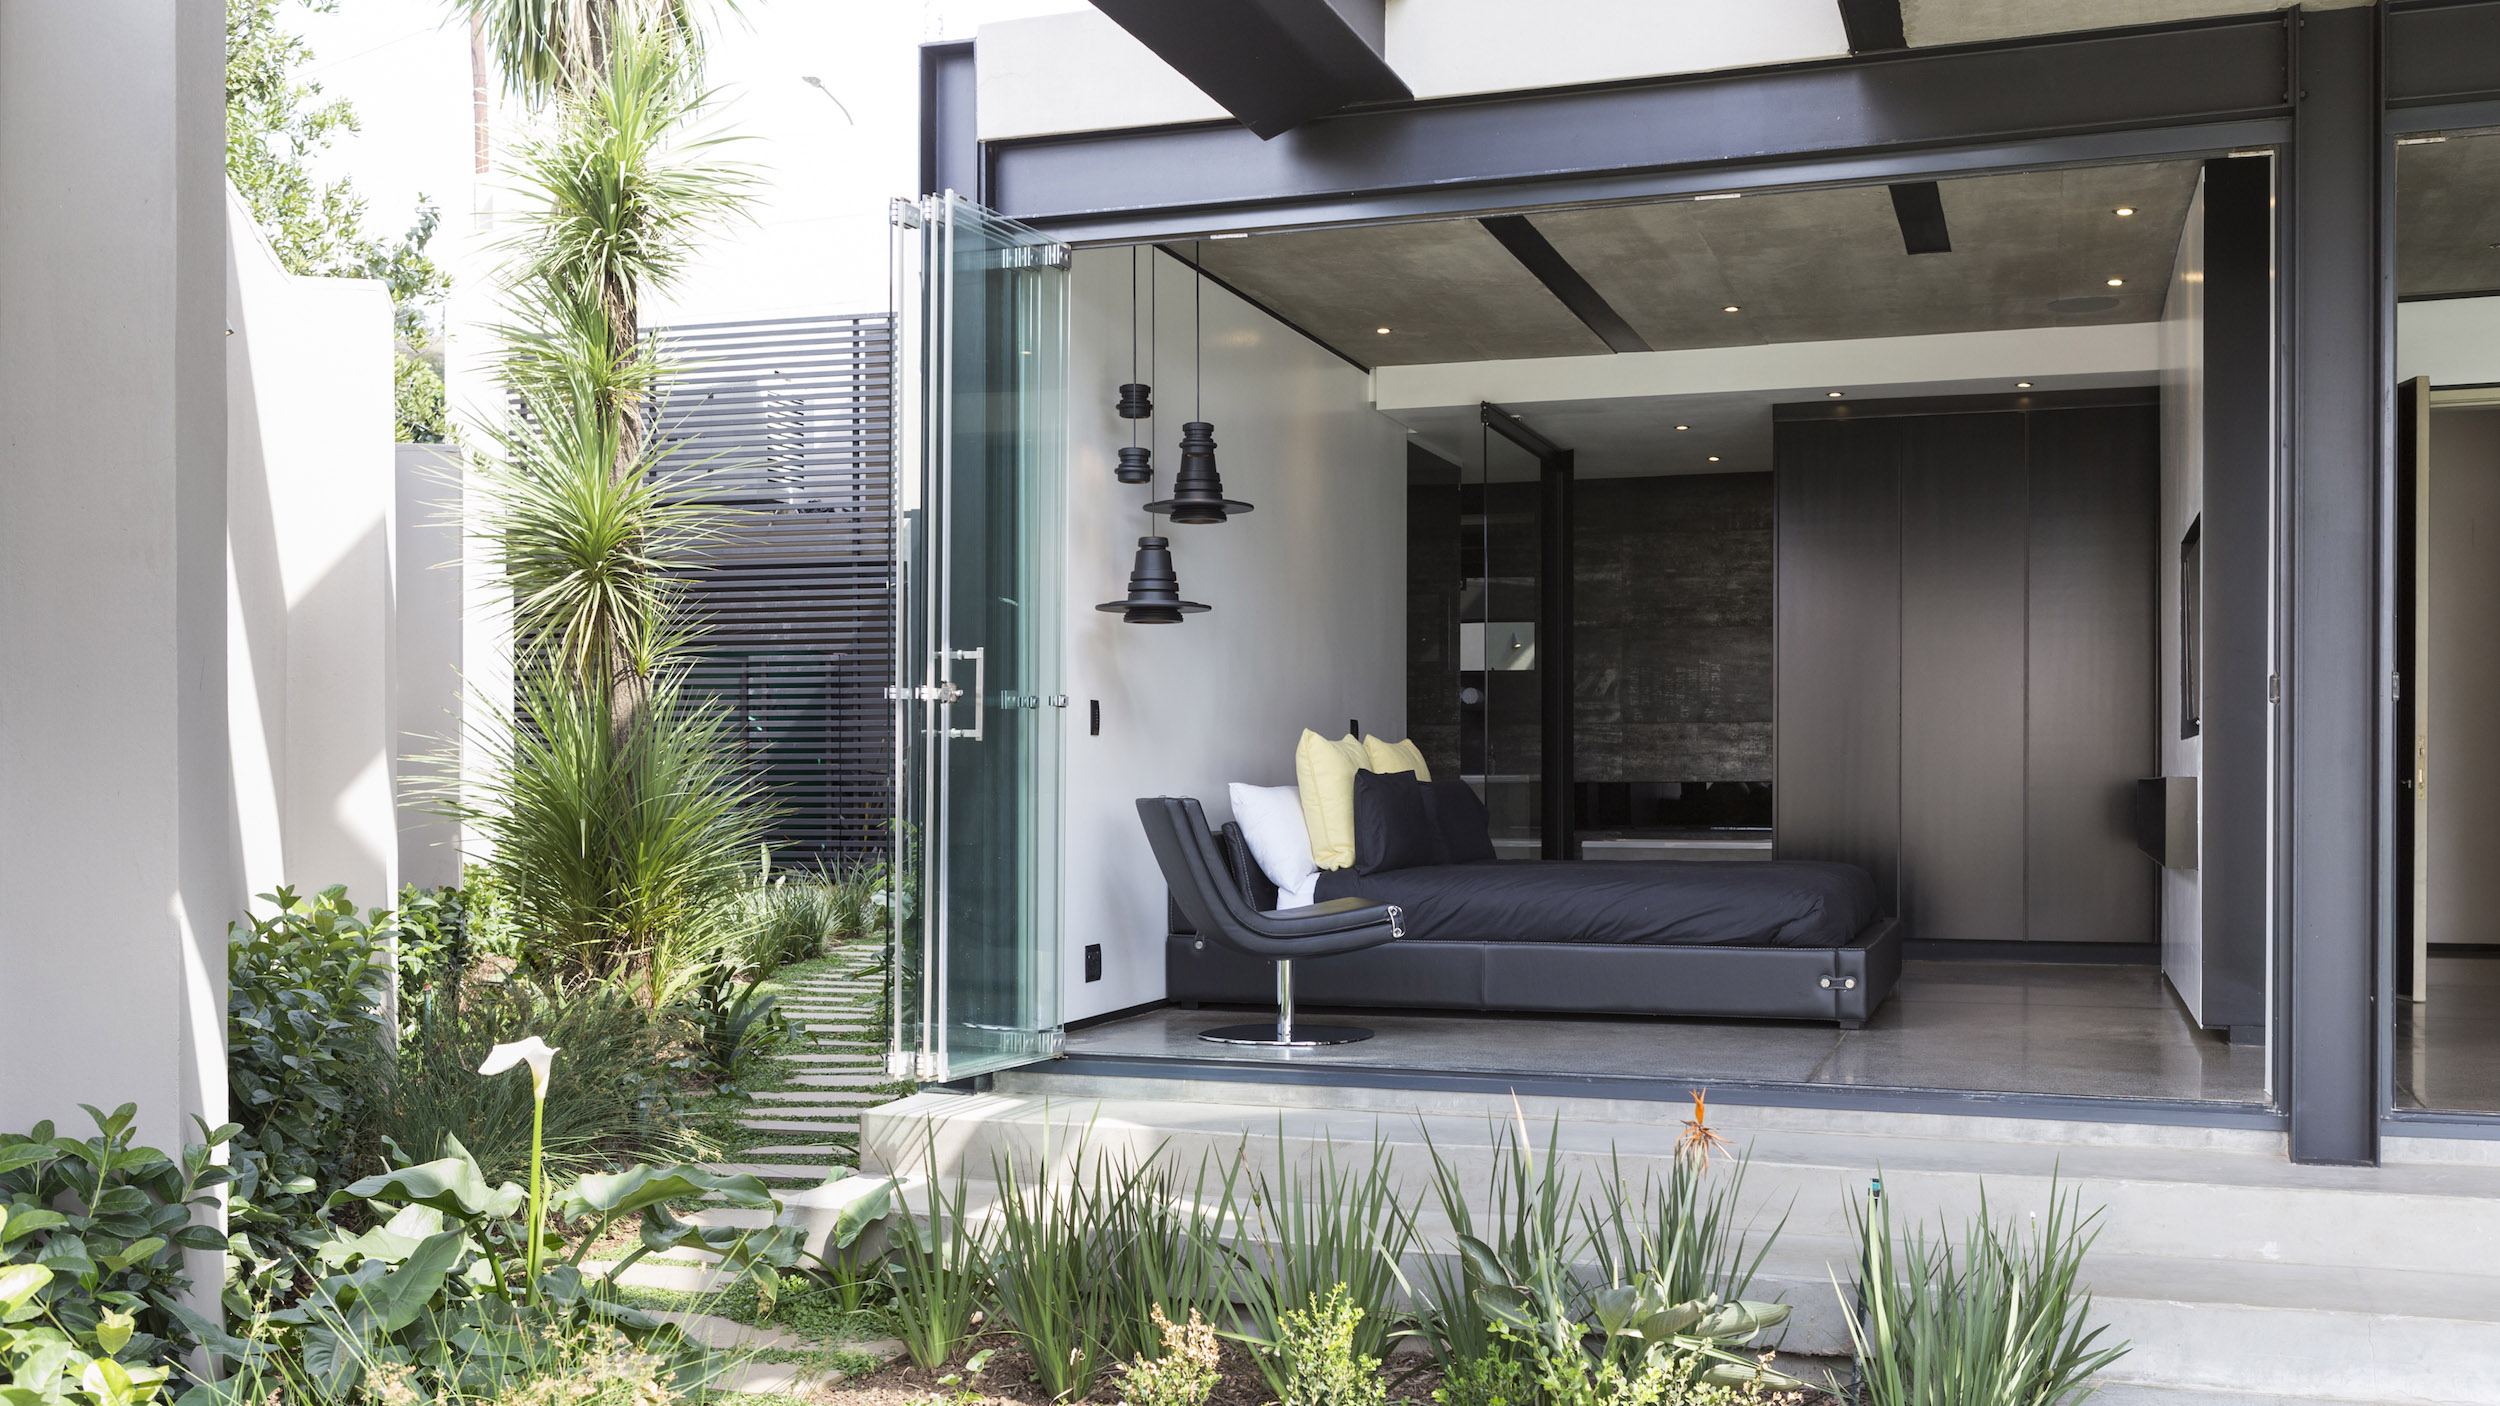 Kloof Road Masterpiece House in Johannesburg by Nico van der Meulen Architects-30